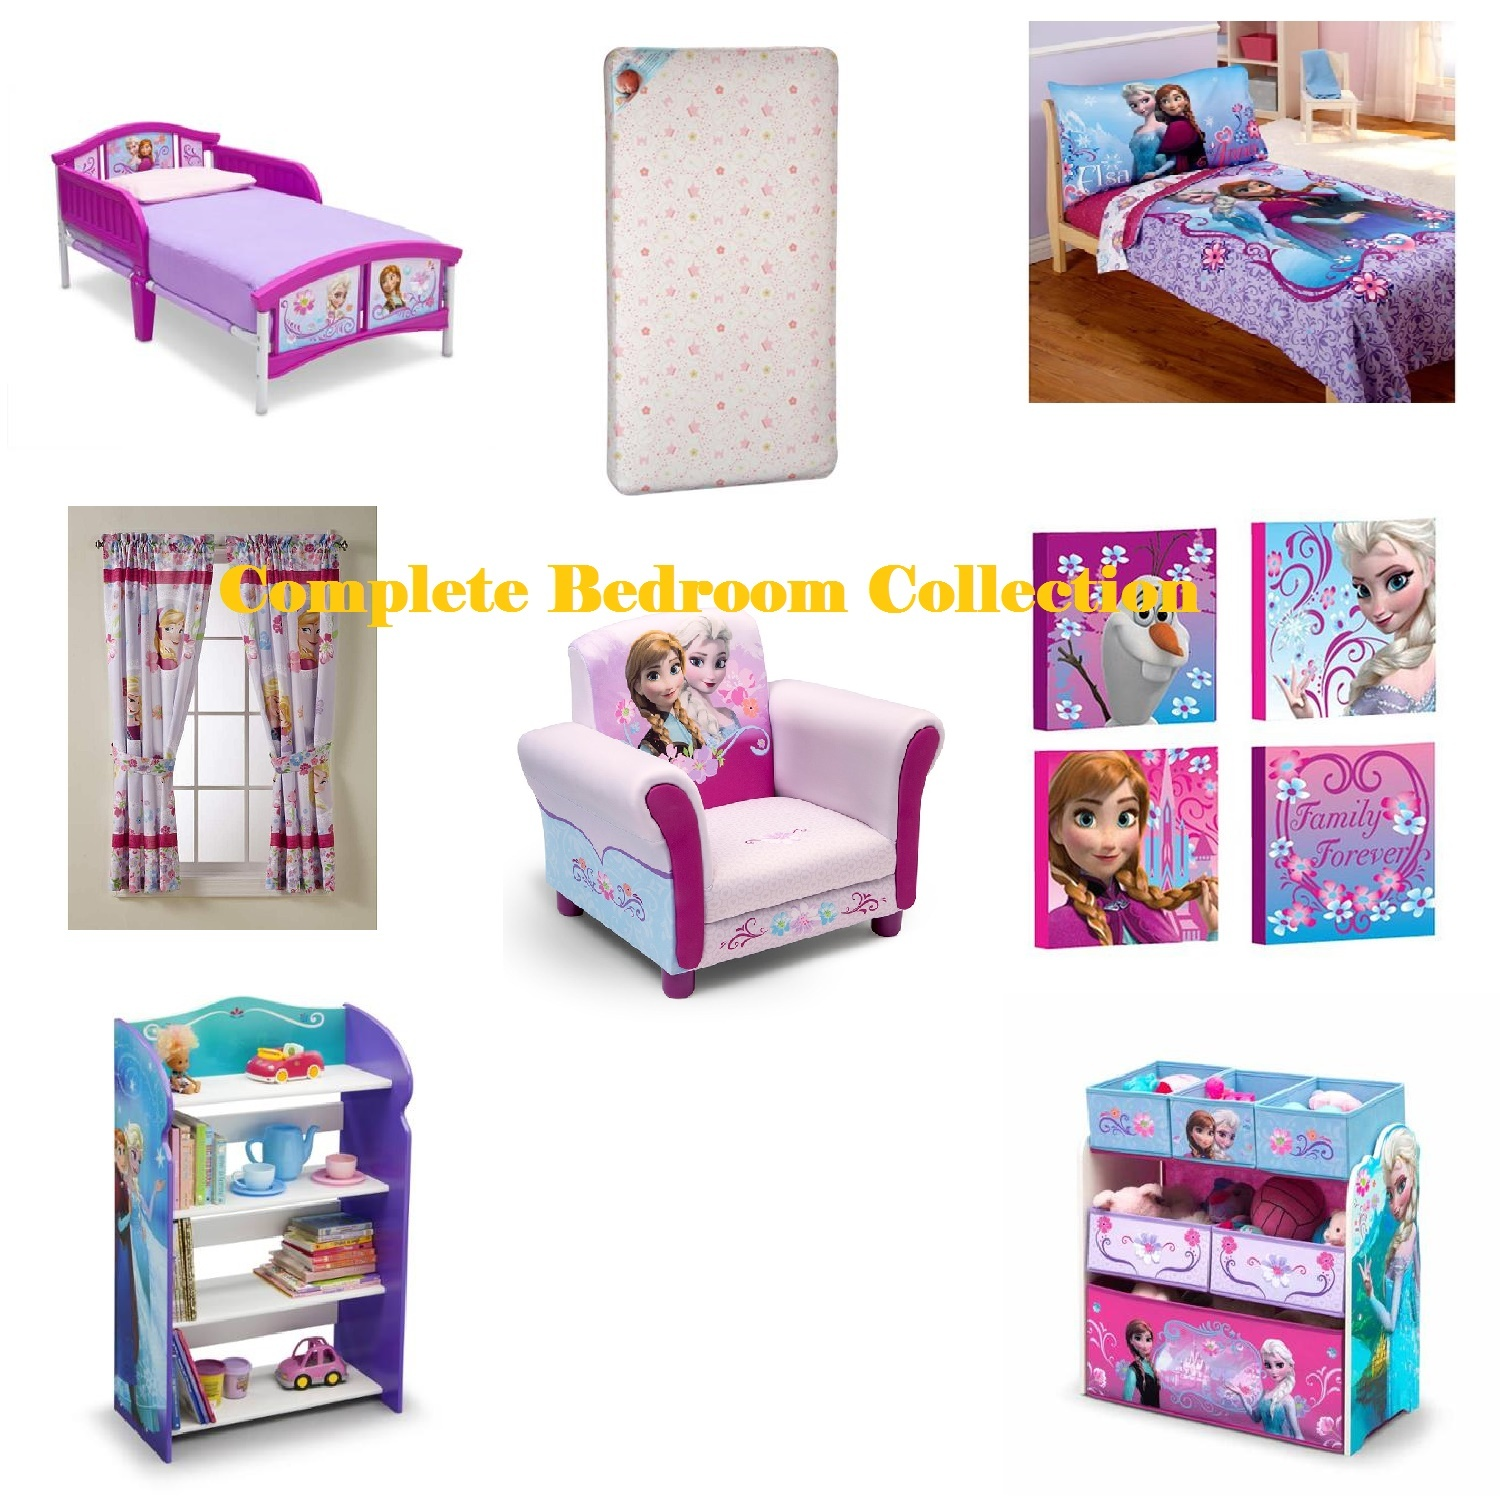 Toddler Complete Bedroom Furniture And And 17 Similar Items